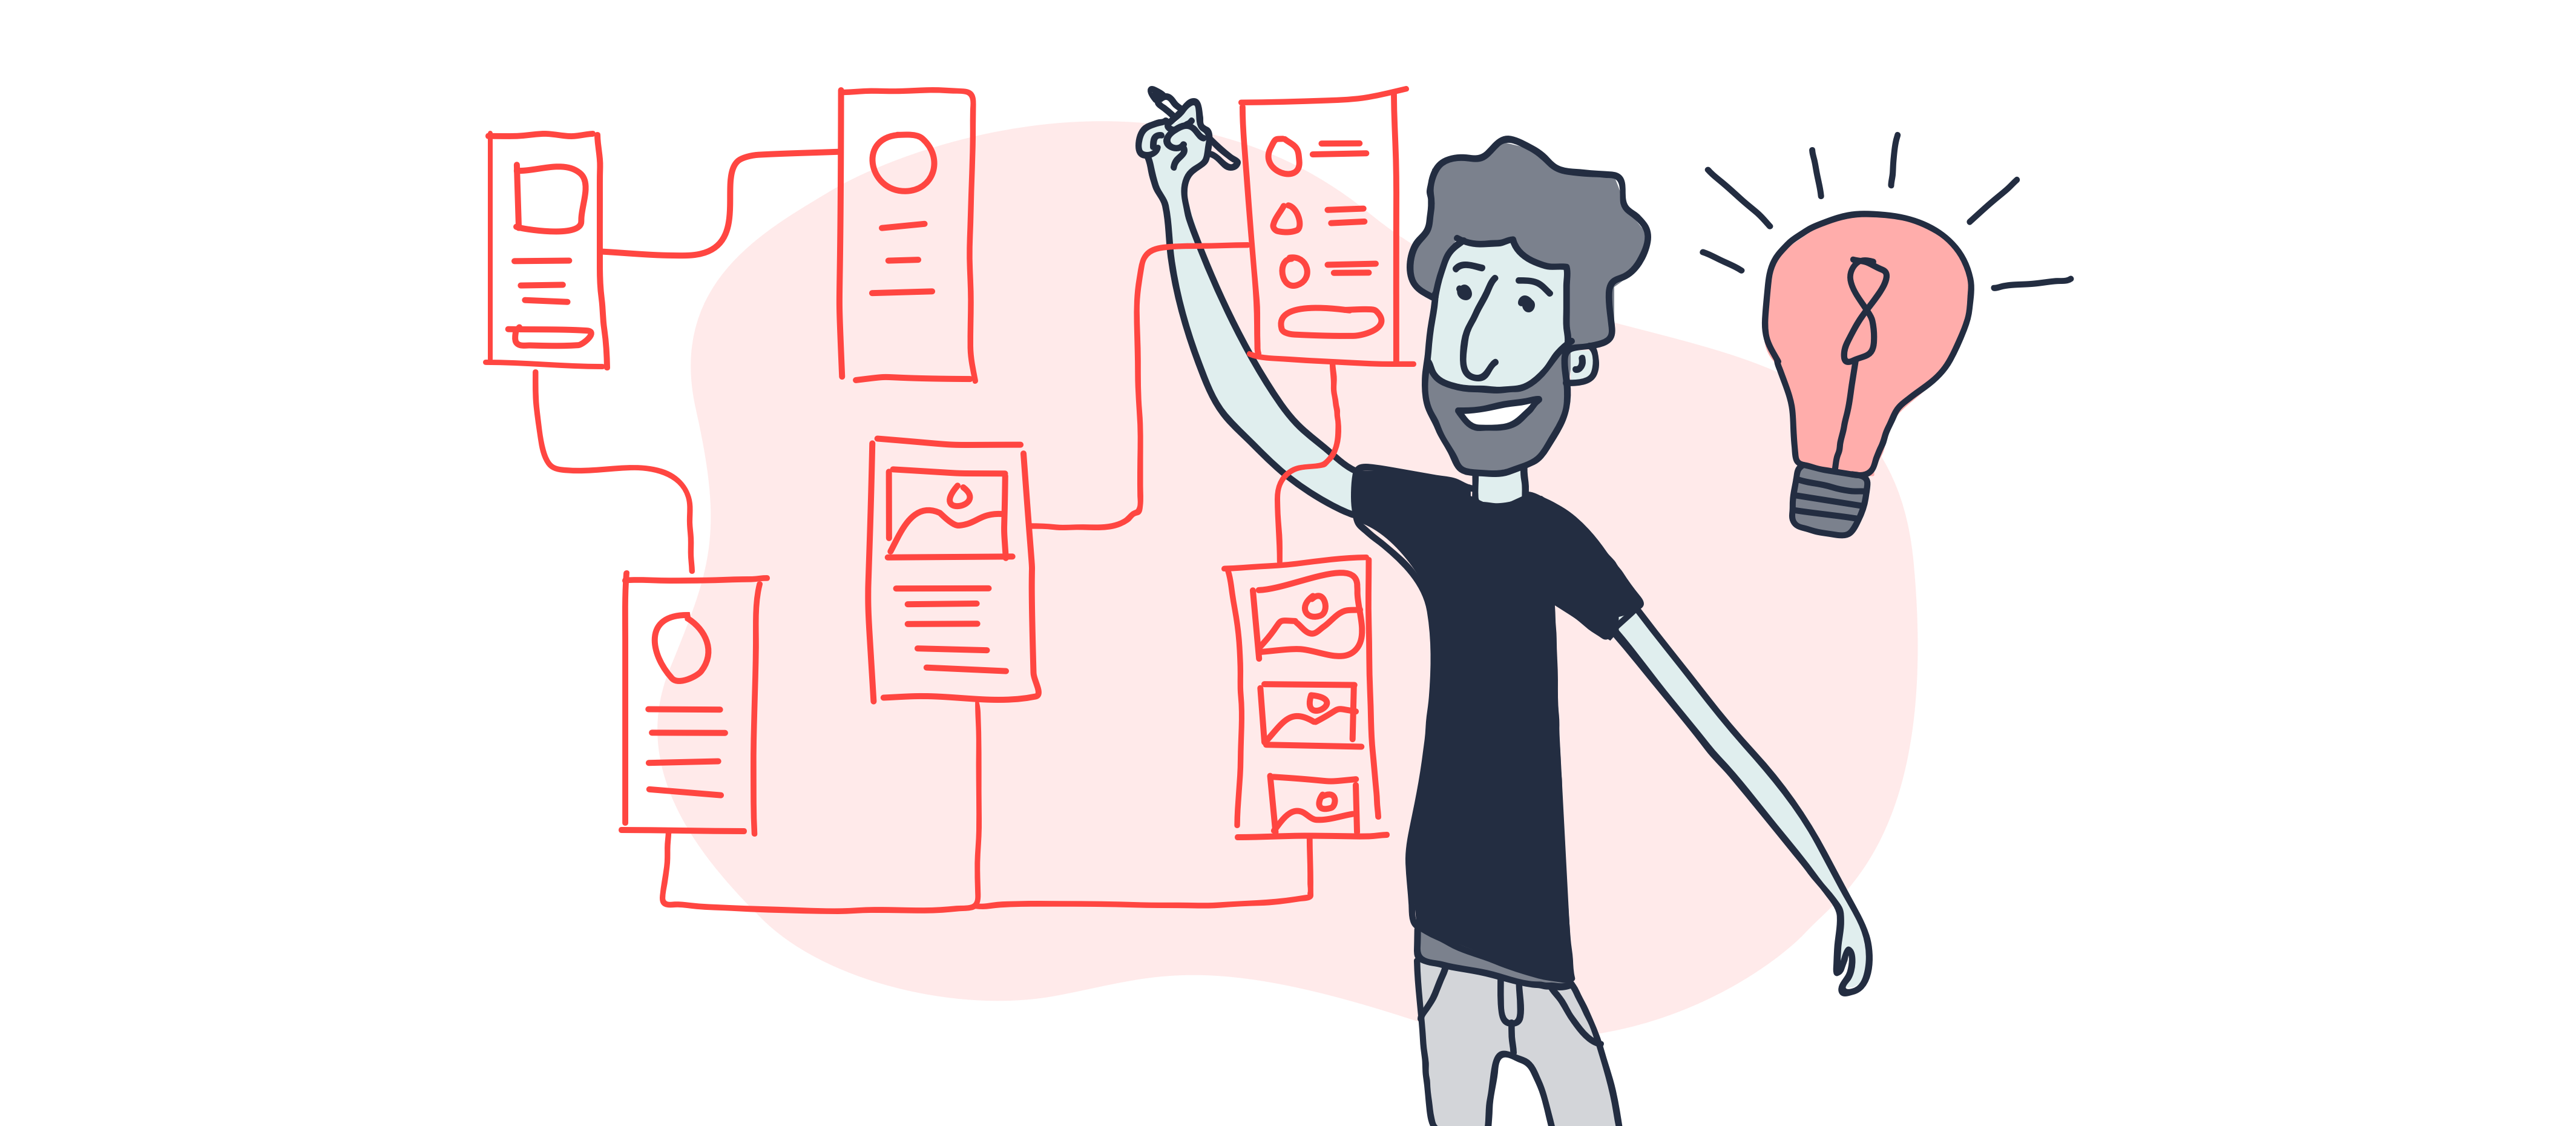 8 Tips for Creating Better User Flows - A Tidy Concept